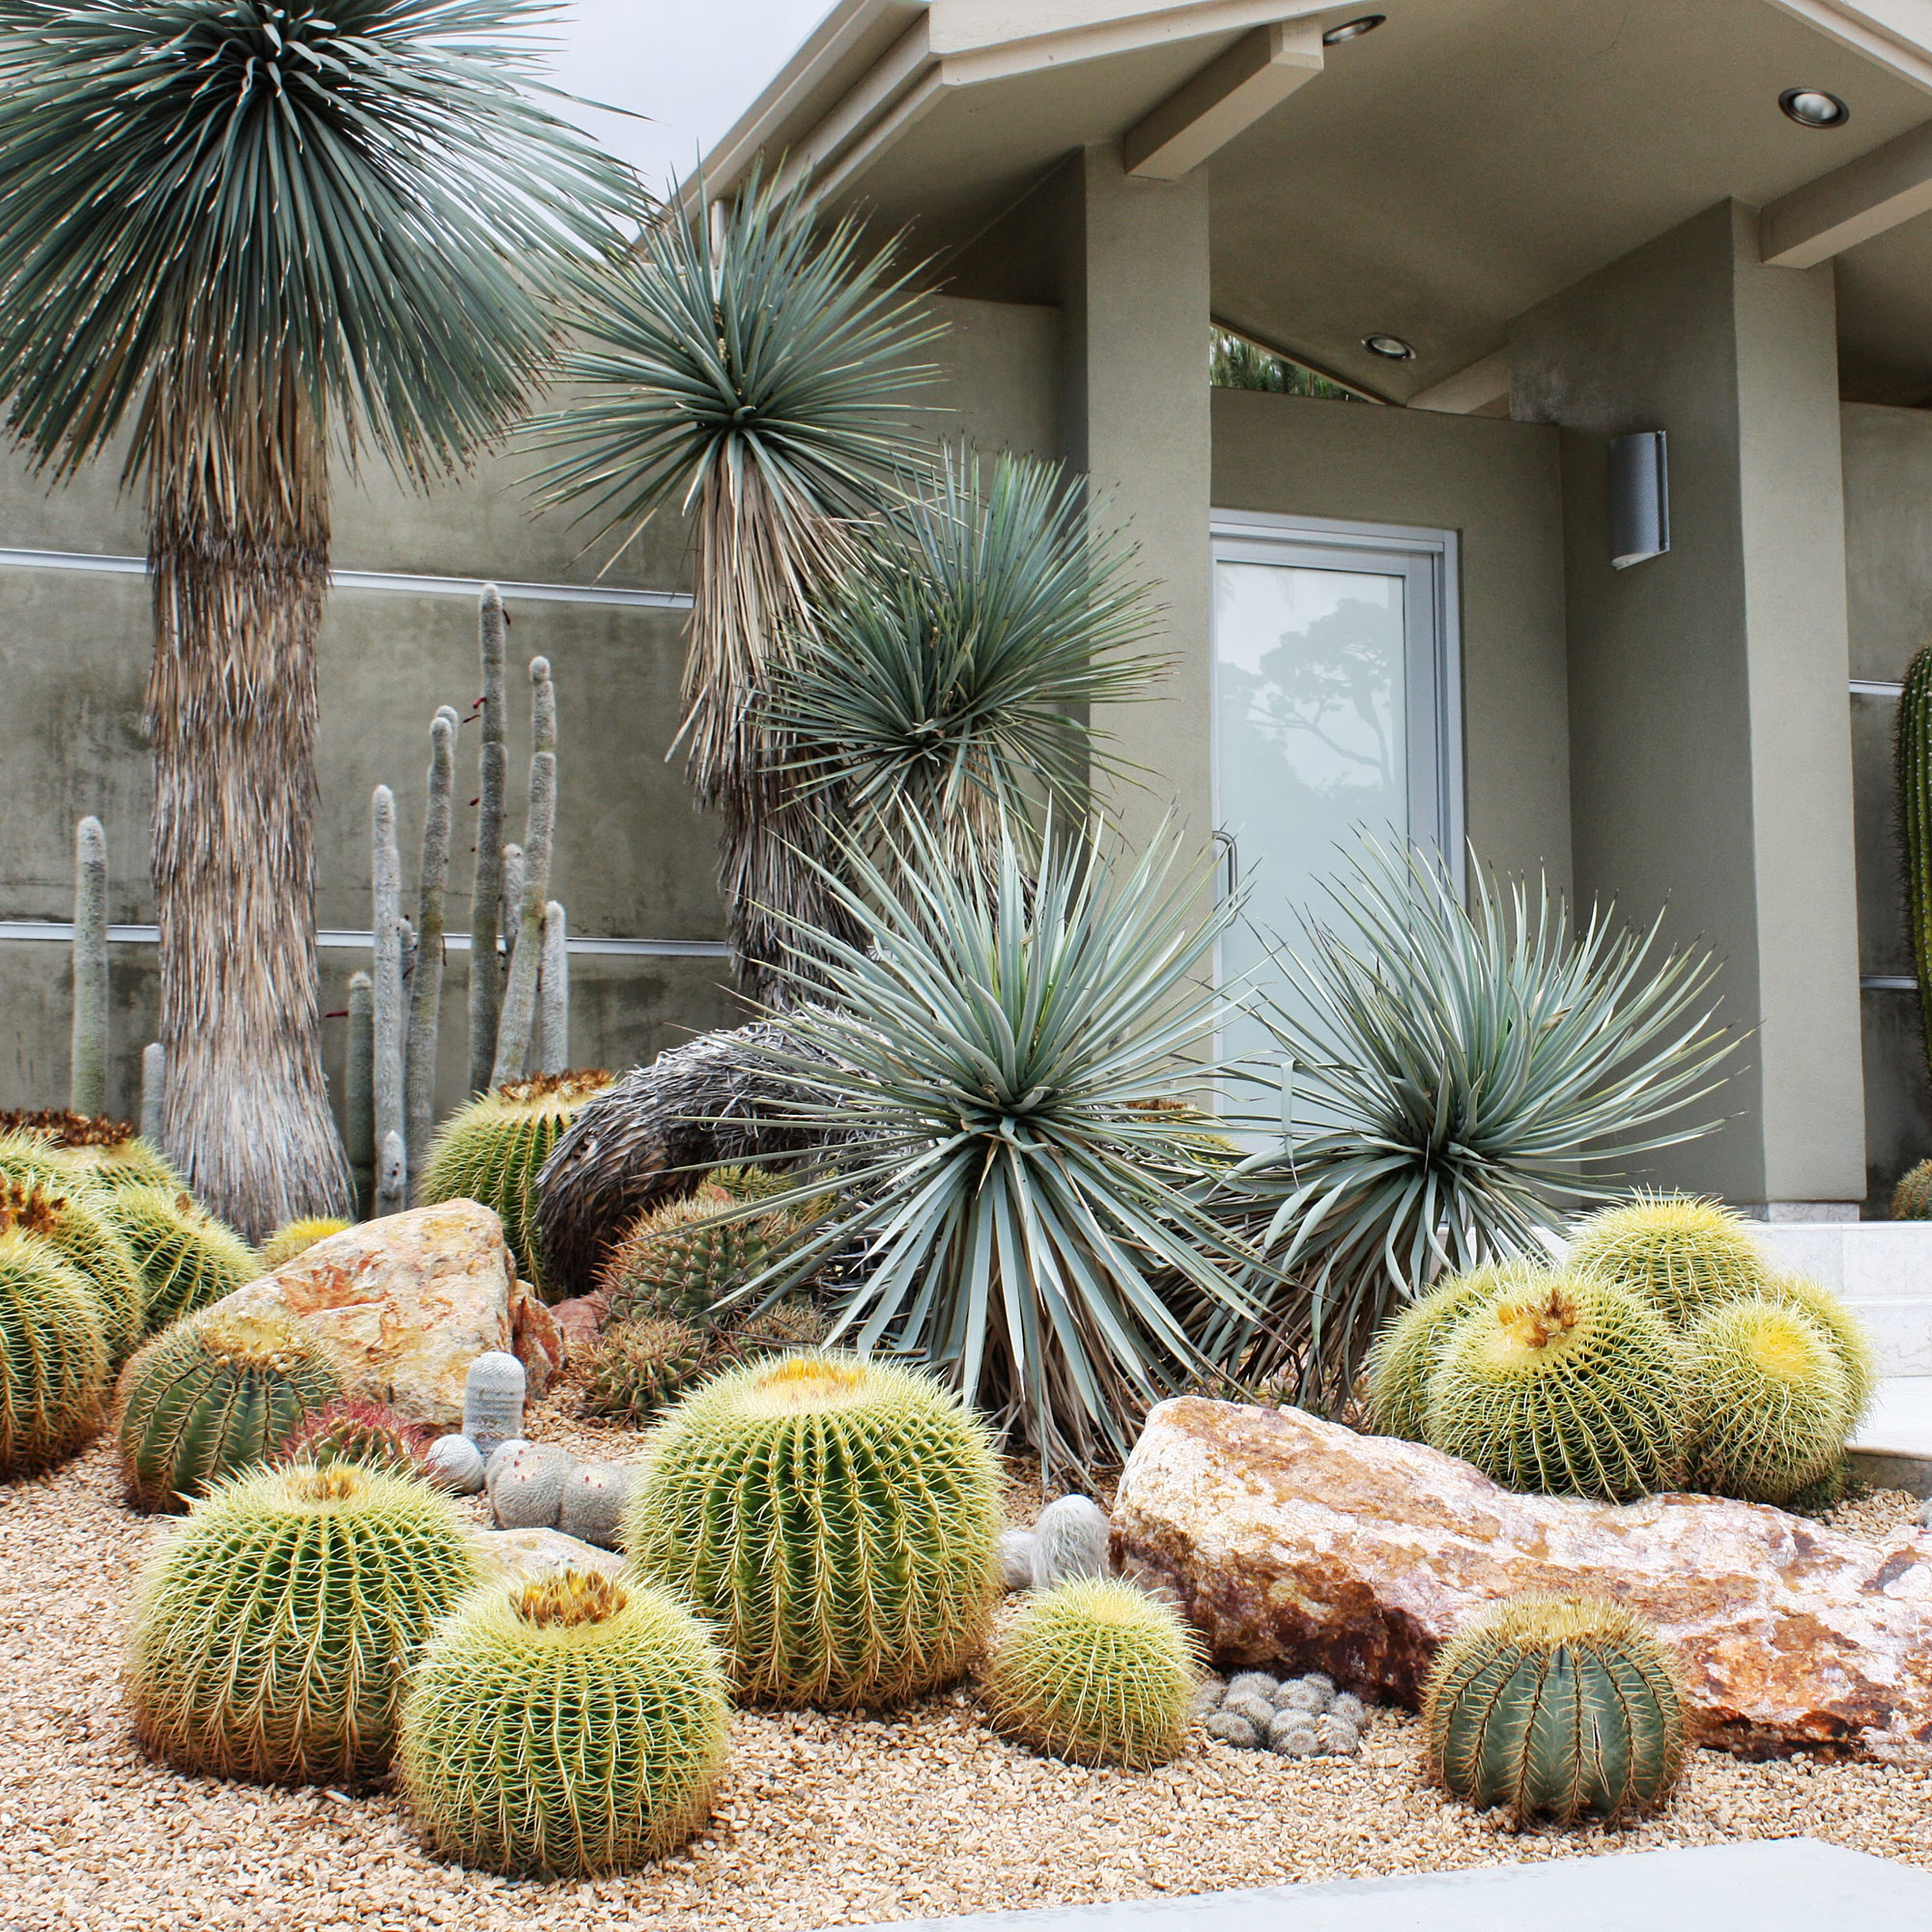 Desert Garden Ideas: Design With Cactus